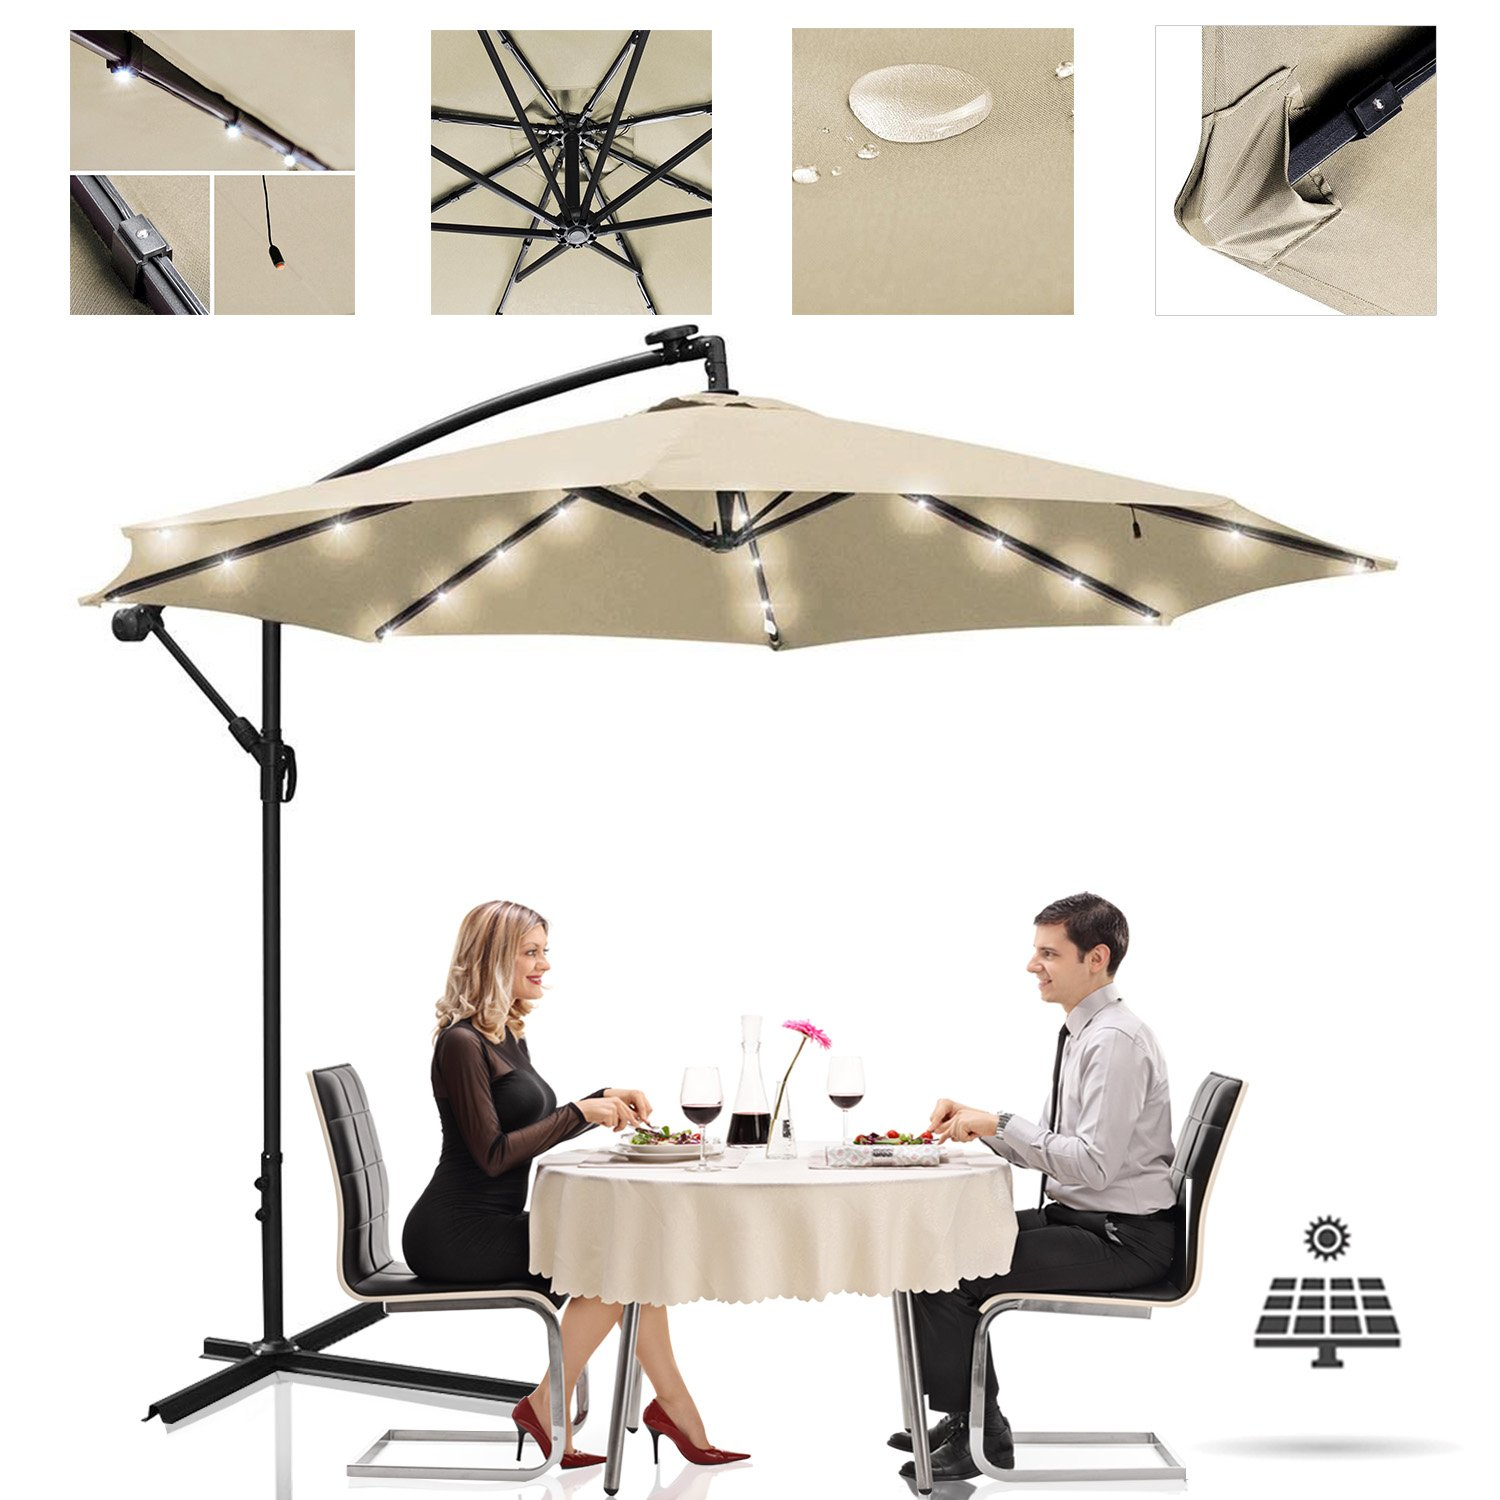 Koval Inc. 10 FT. Cantilever Offset Patio Umbrella Crank Lift with LED Lights & Stand (10 FT, Tan)